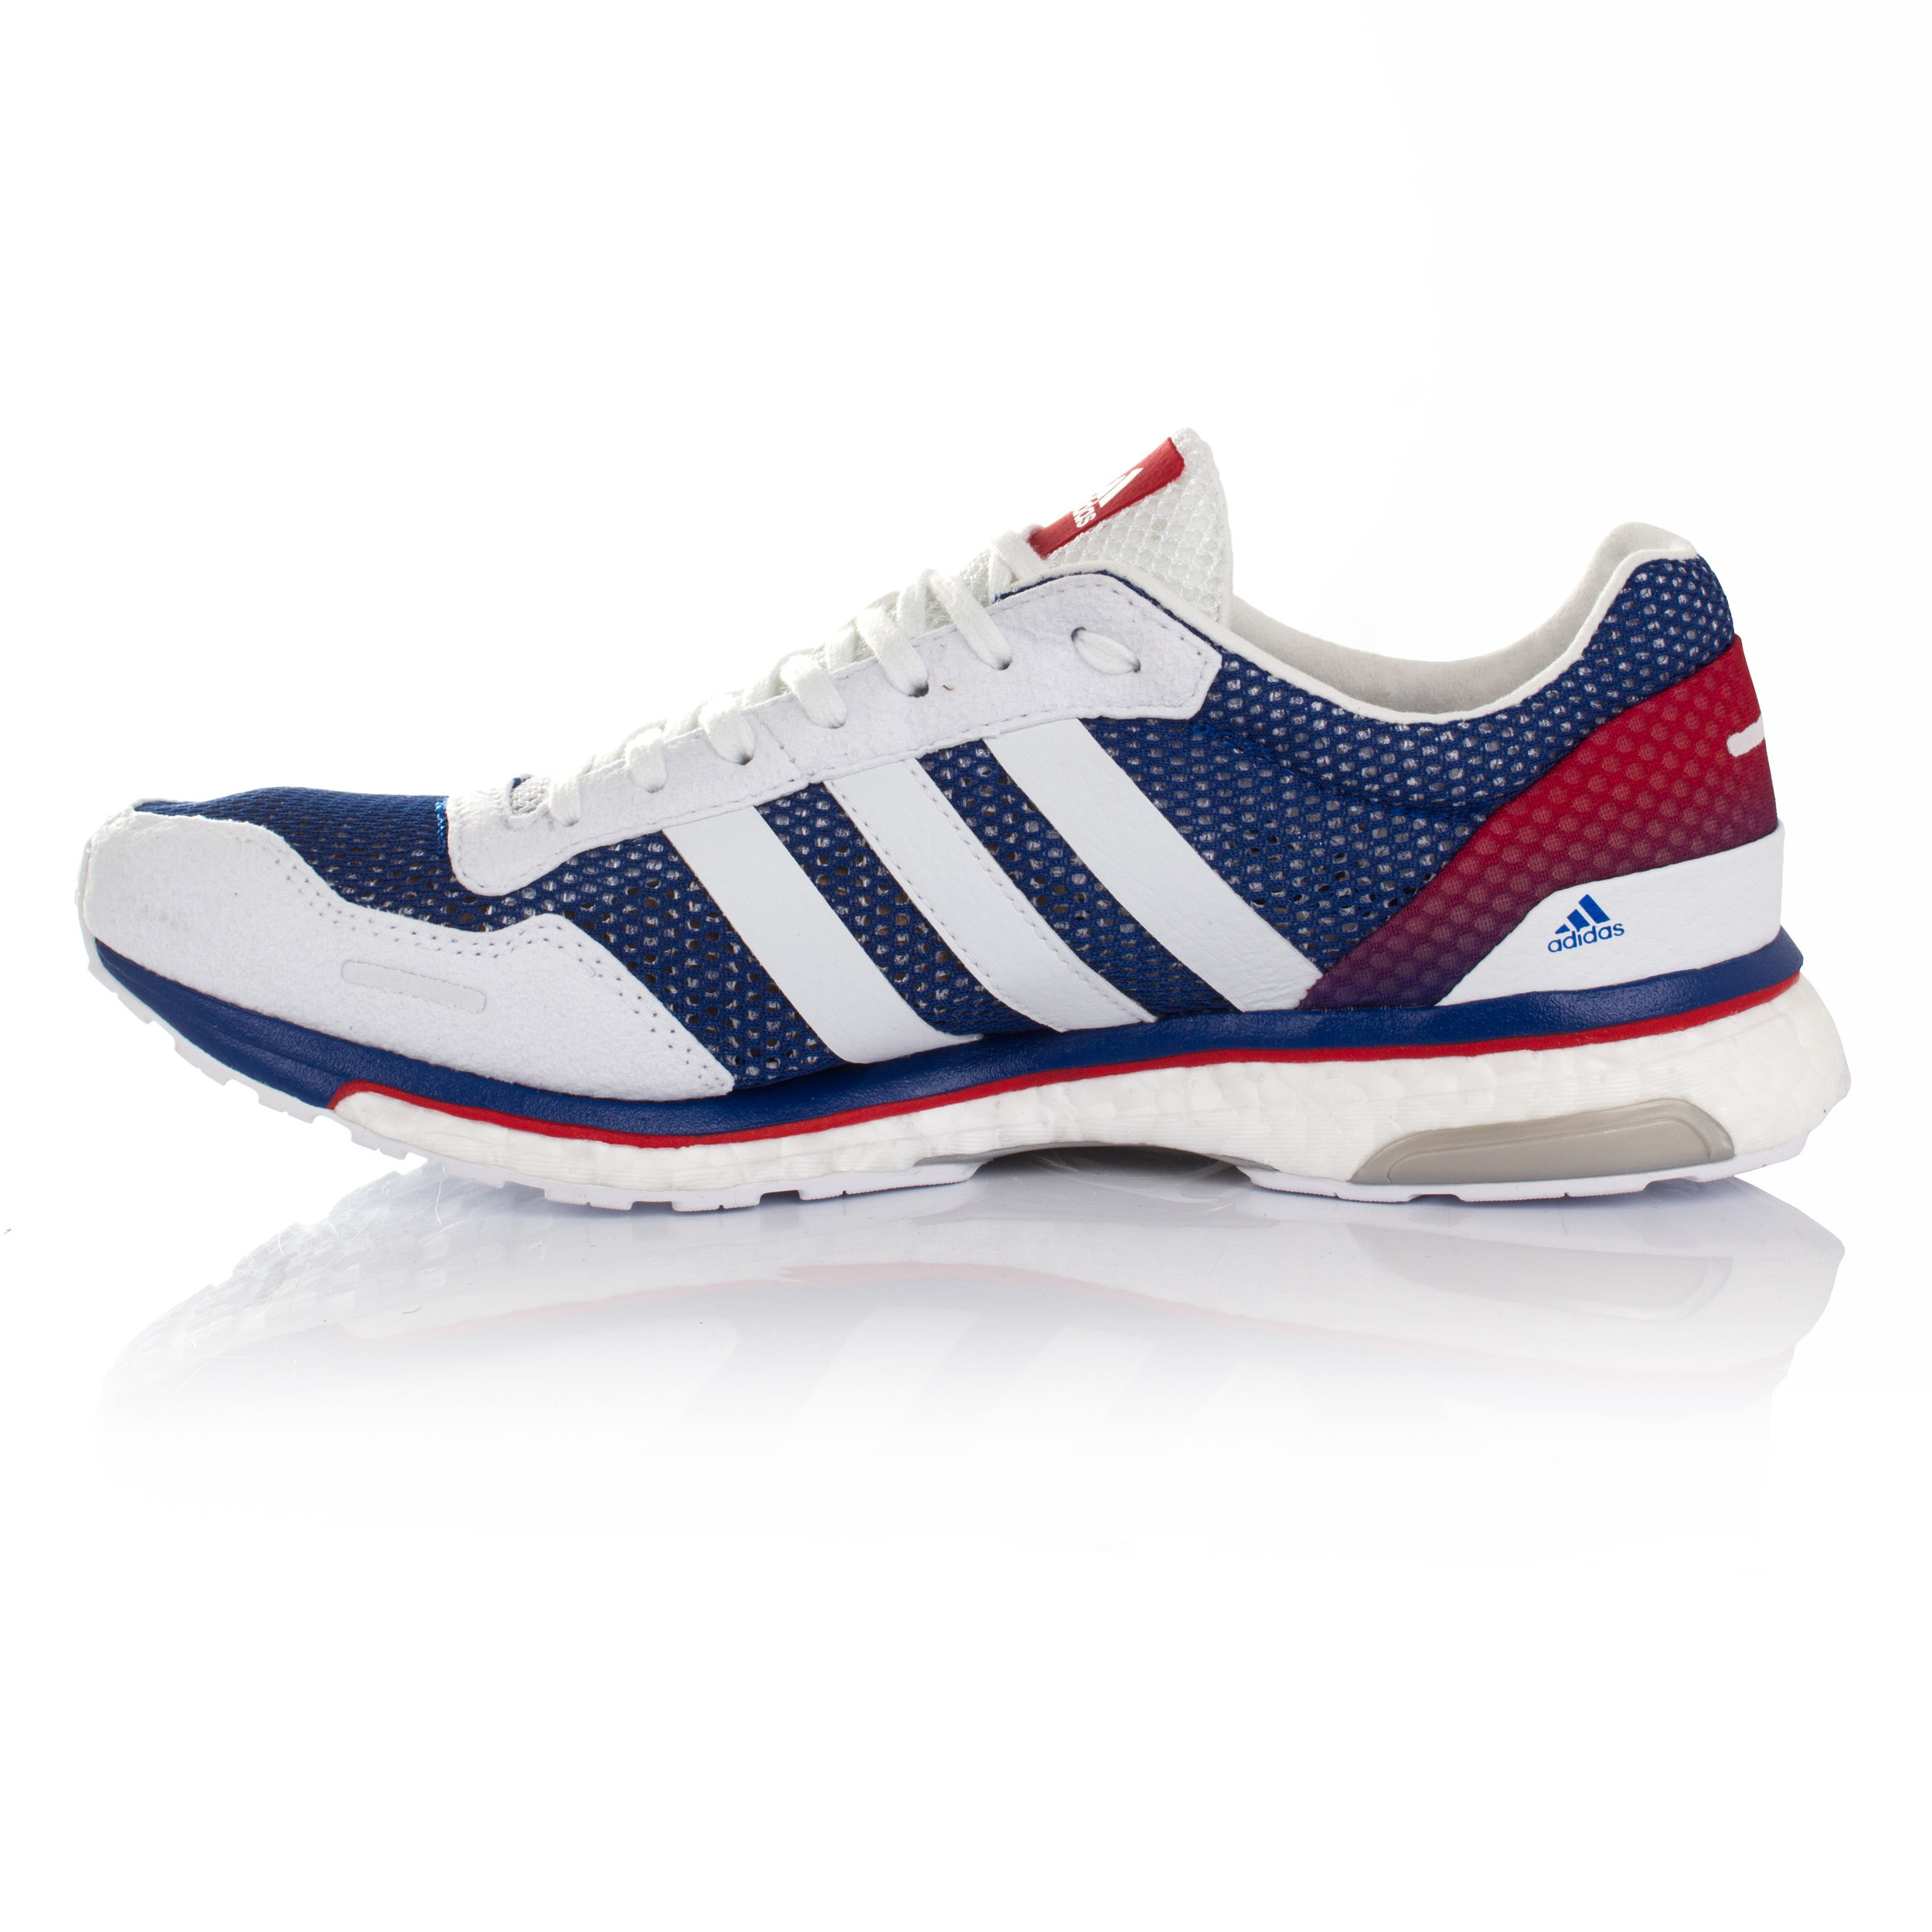 3286199282956 Adidas Adizero Adios Aktiv Mens Running Road Sports Shoes Trainers ...